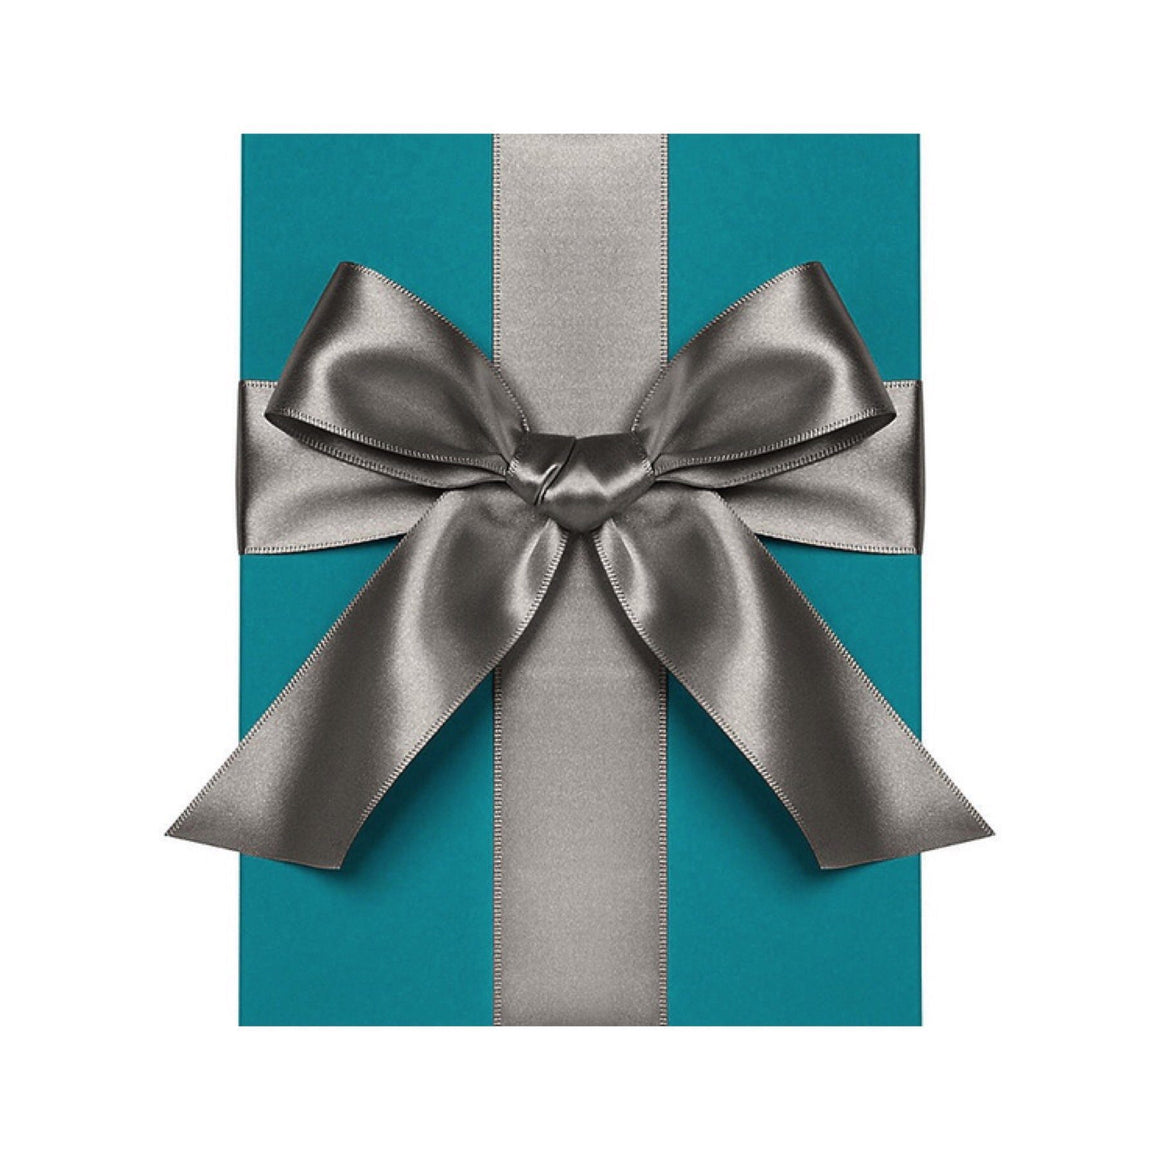 "GIFT GIVING - RIBBON 1/4"" SLATE, RIBBON, WASTE NOT PAPER - Bon + Co. Party Studio"